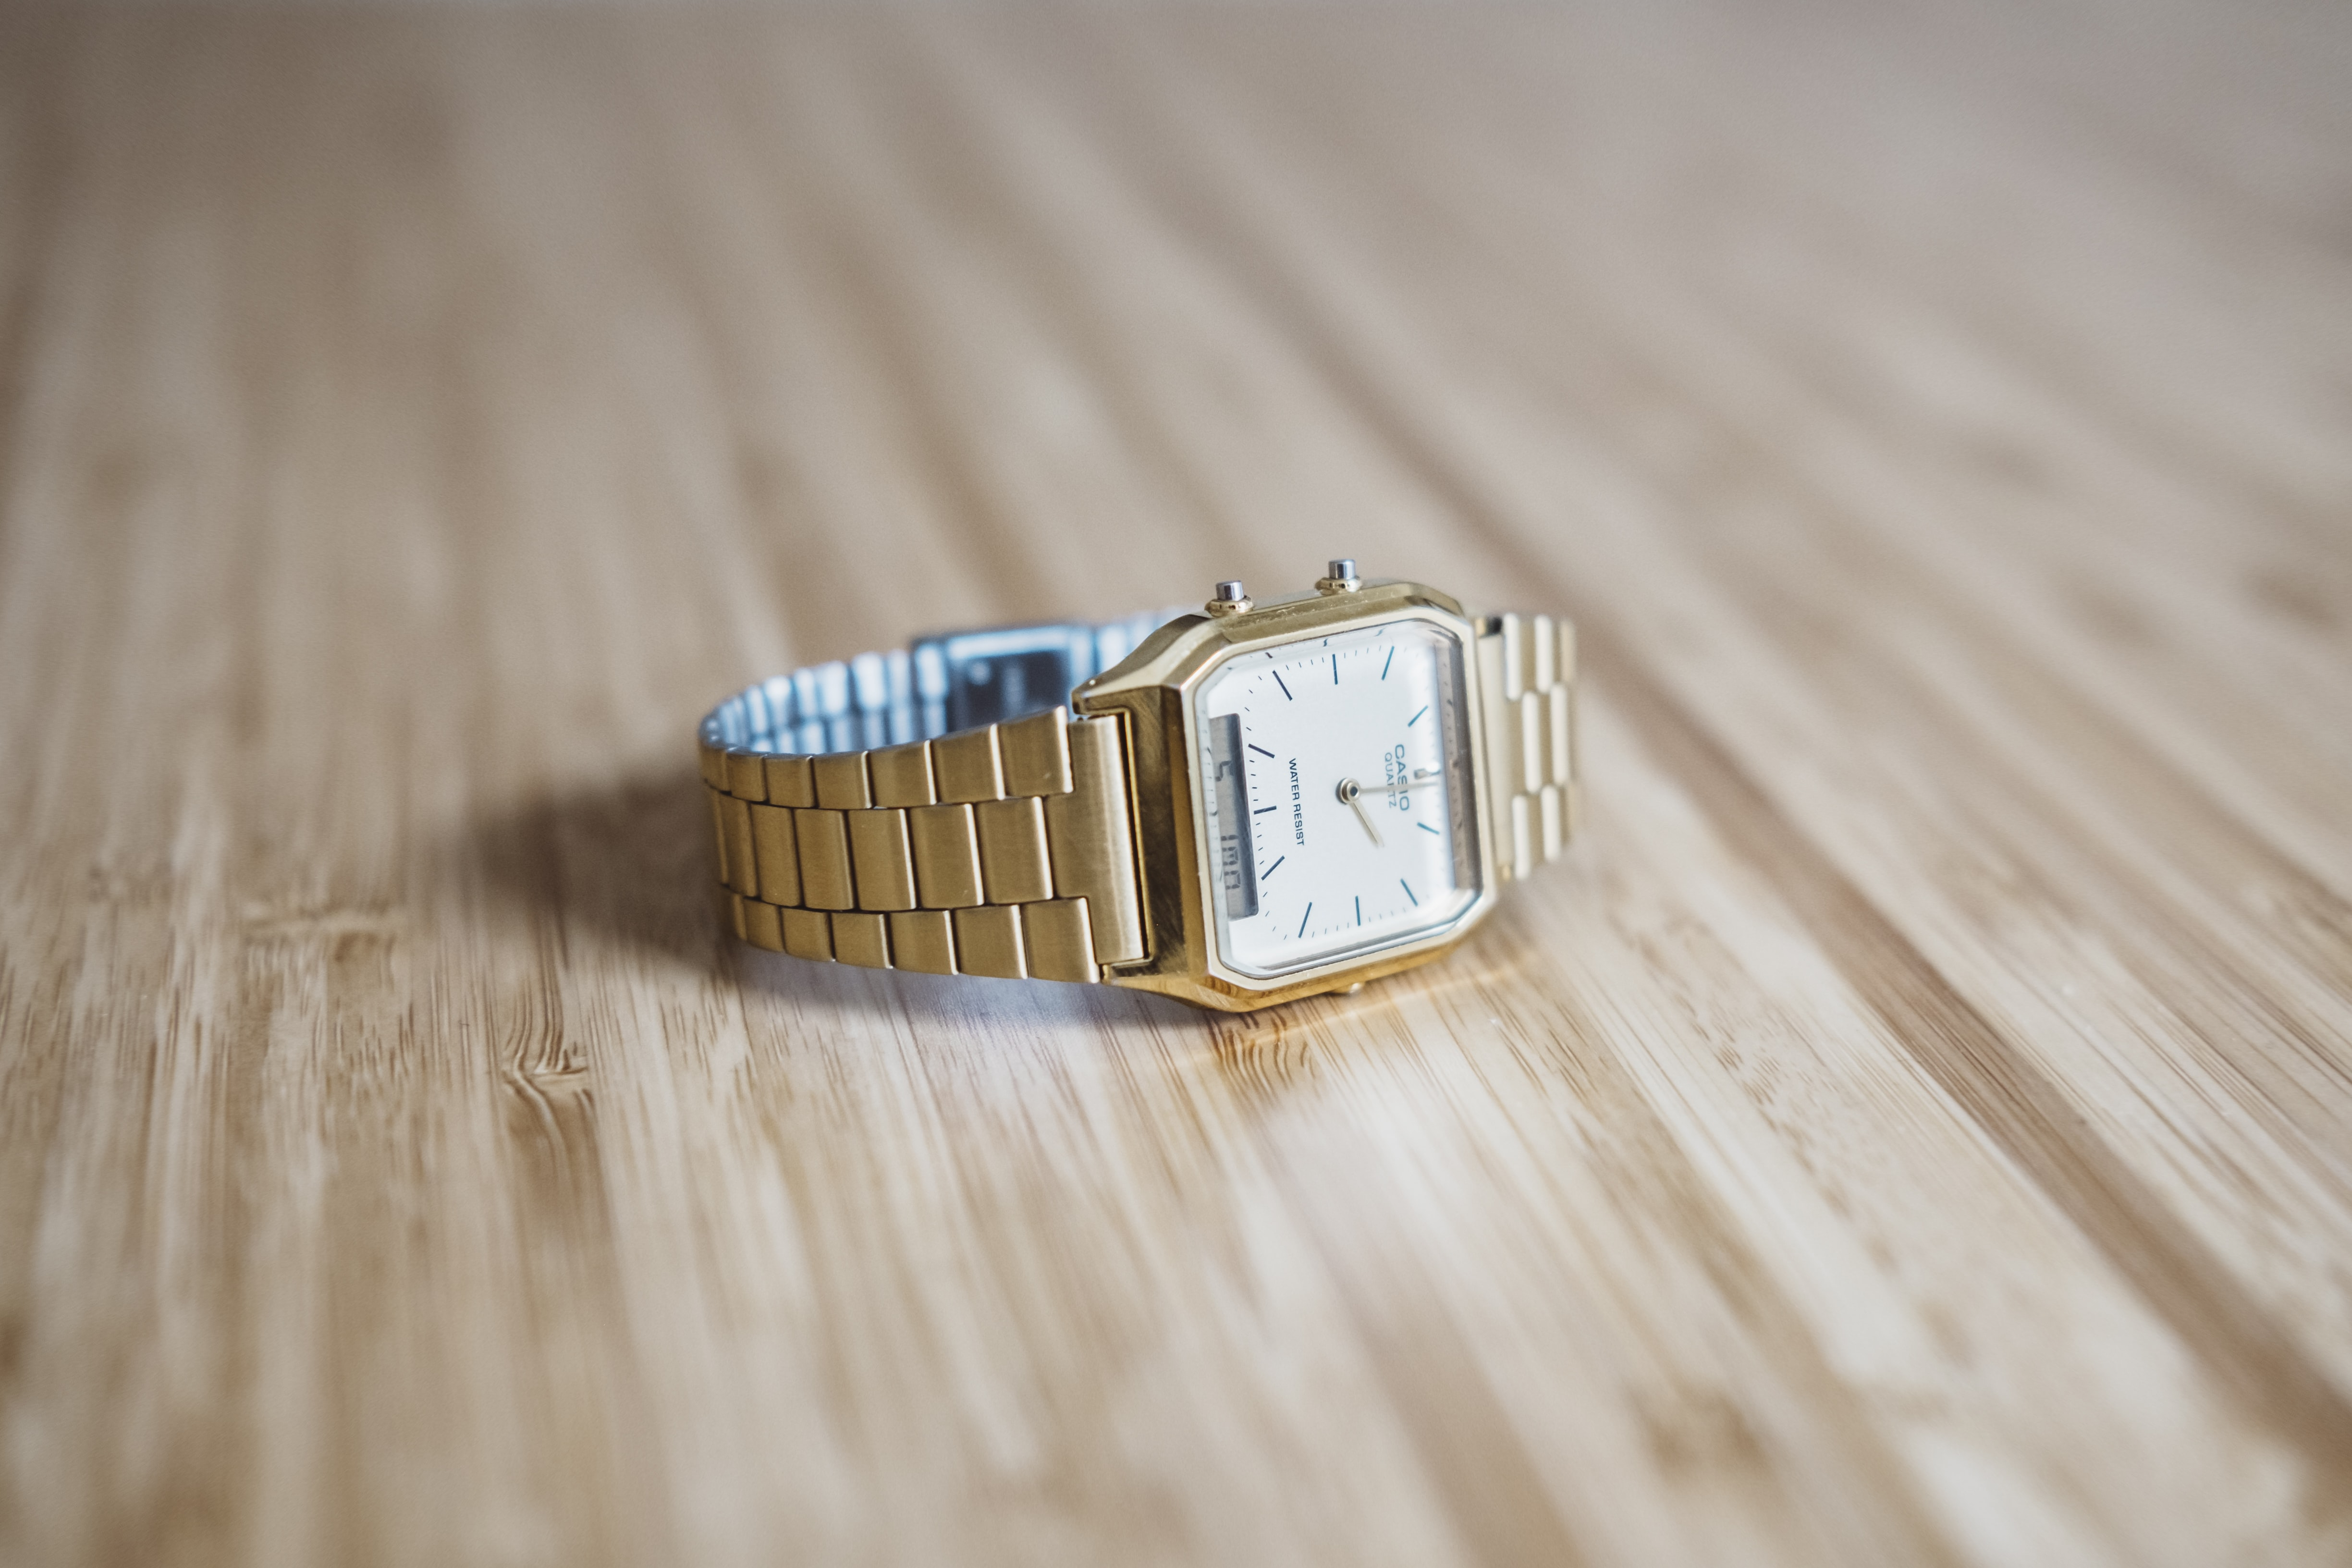 A gold Casio watch is placed on a wooden surface in Amersfoort.